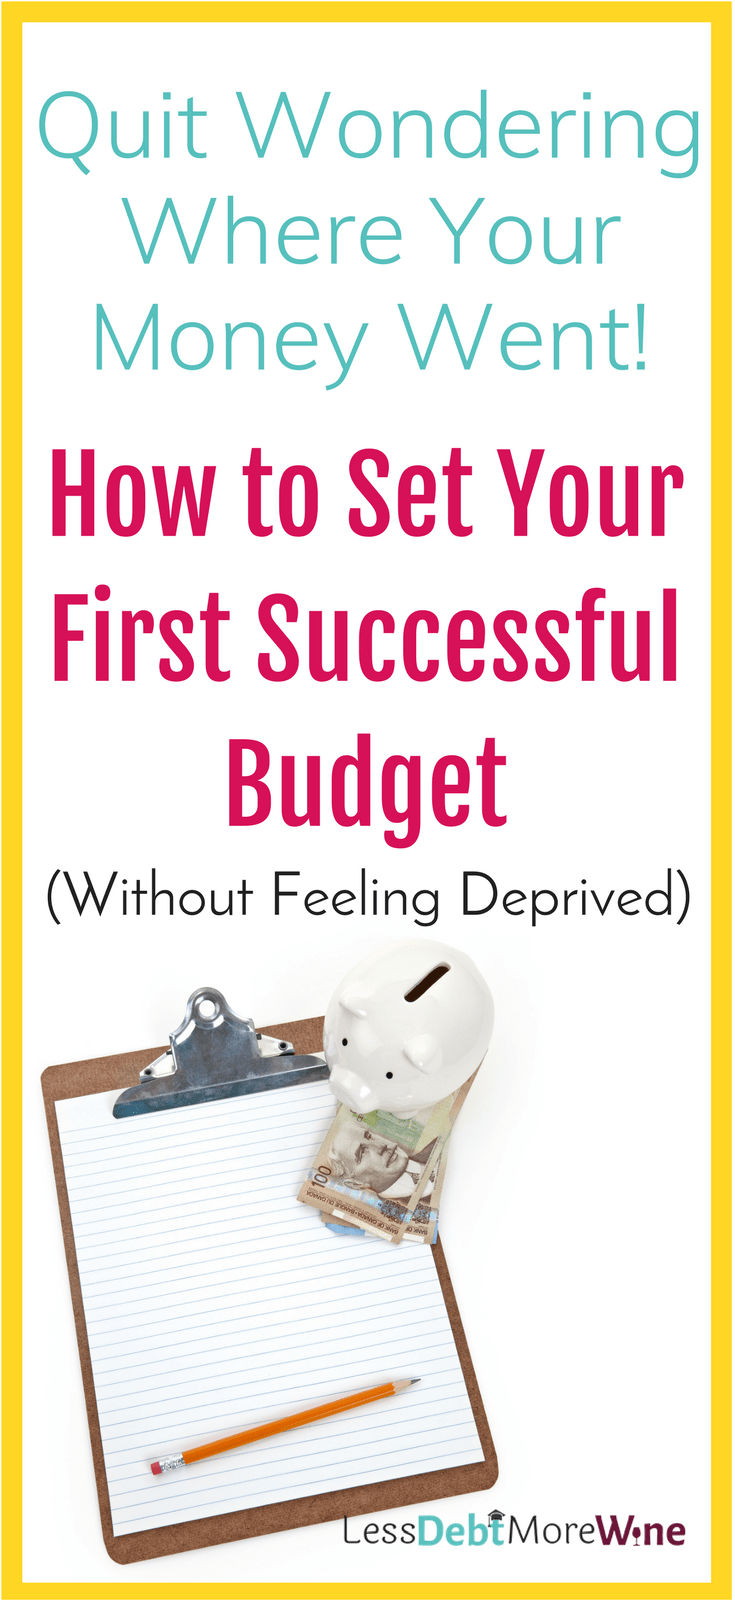 how to budget | budget printable | money management | personal finance tips